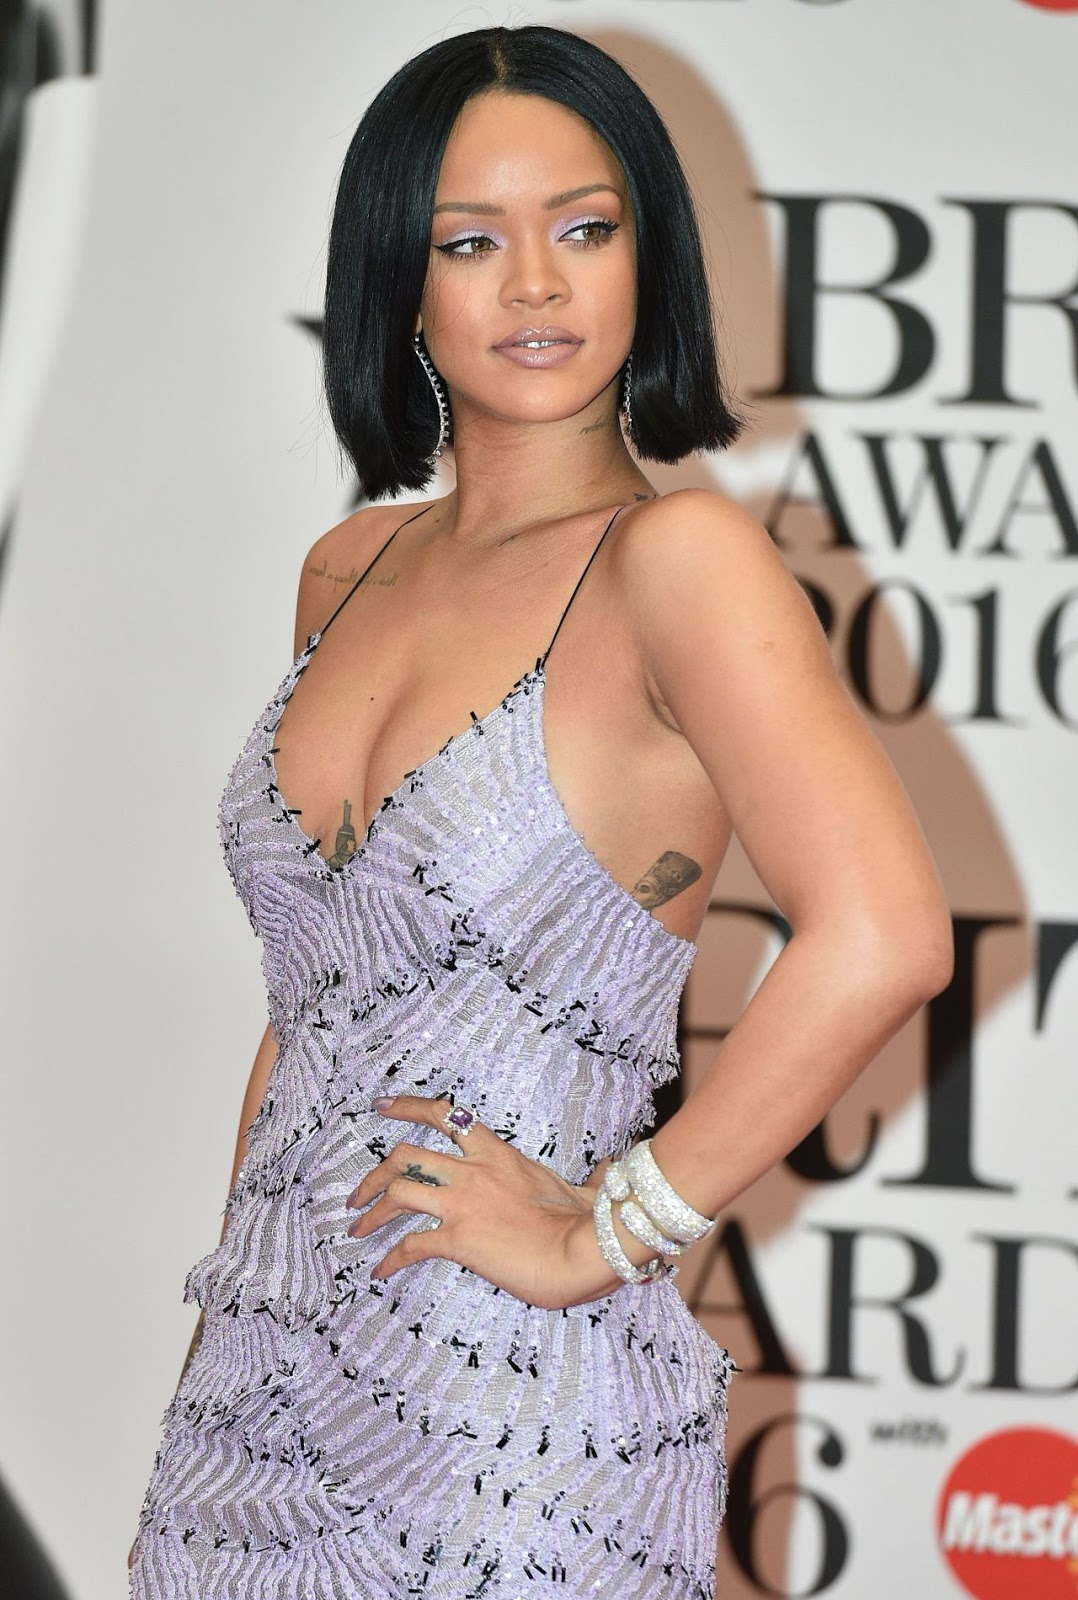 Rihanna goes braless at the Brit Awards 2016